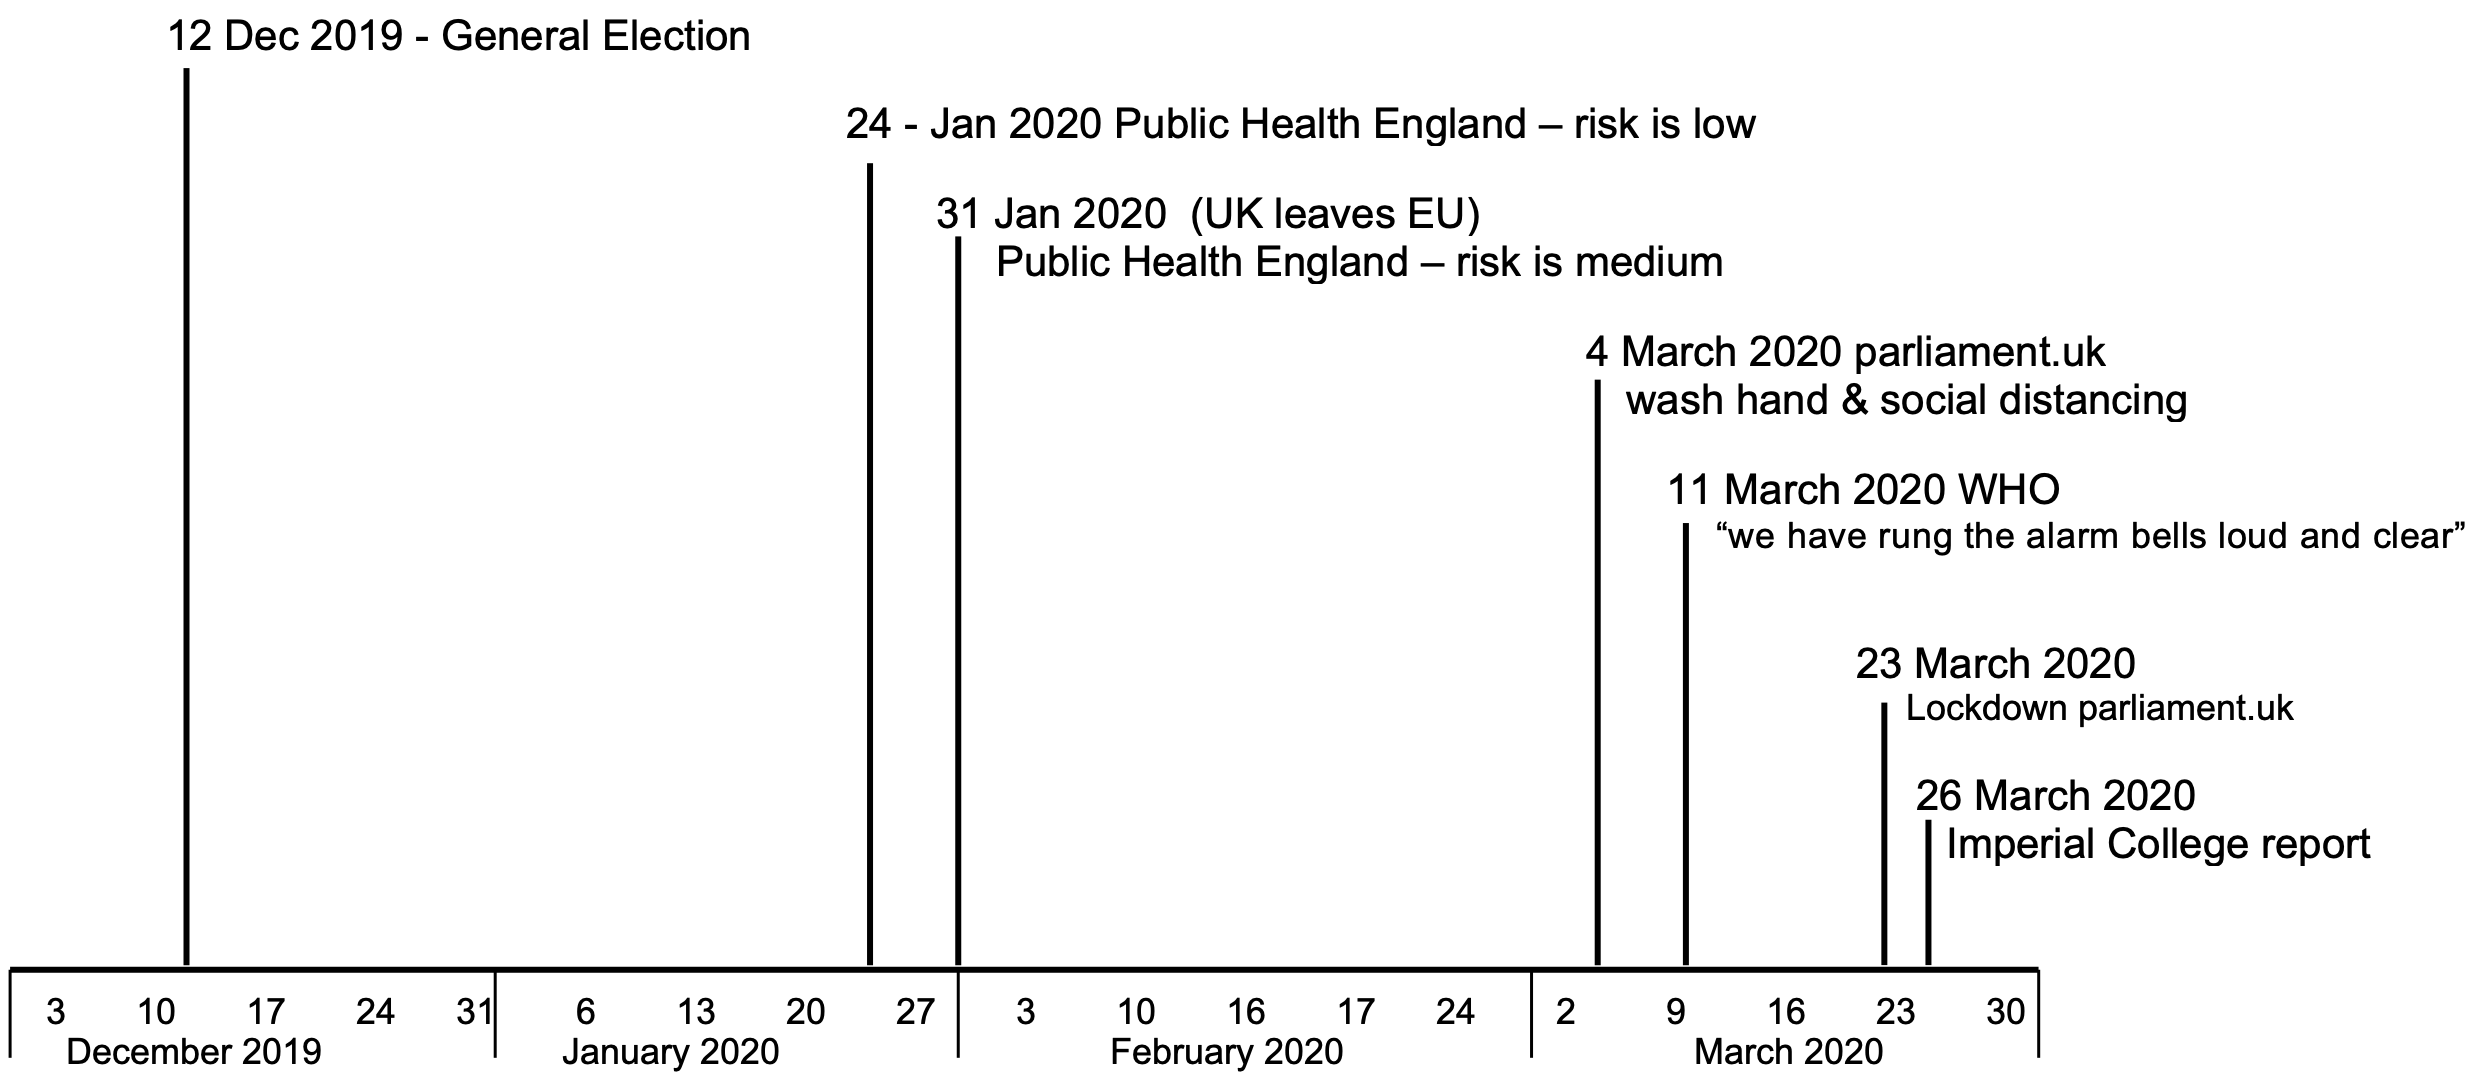 Timeline to lockdown showing events from the UK General election in 2019 to the lockdown in March 2020